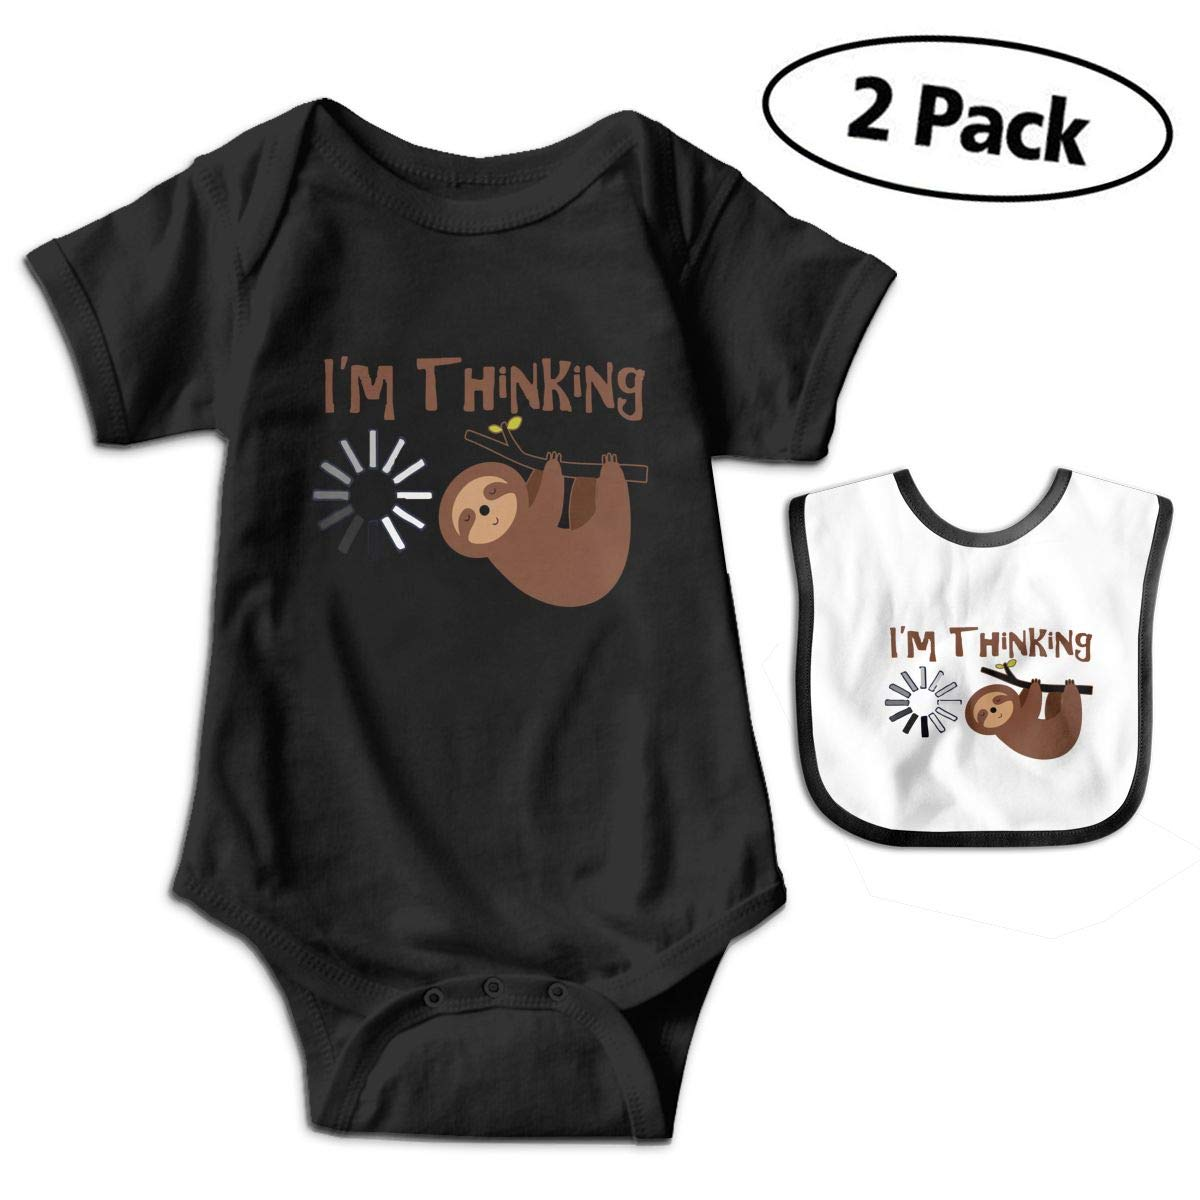 Mostico Nachill Cute Sloth Im Thinking Newborn Infant Baby Girl Boy 100/% Cotton Print Jumpsuit Clothes